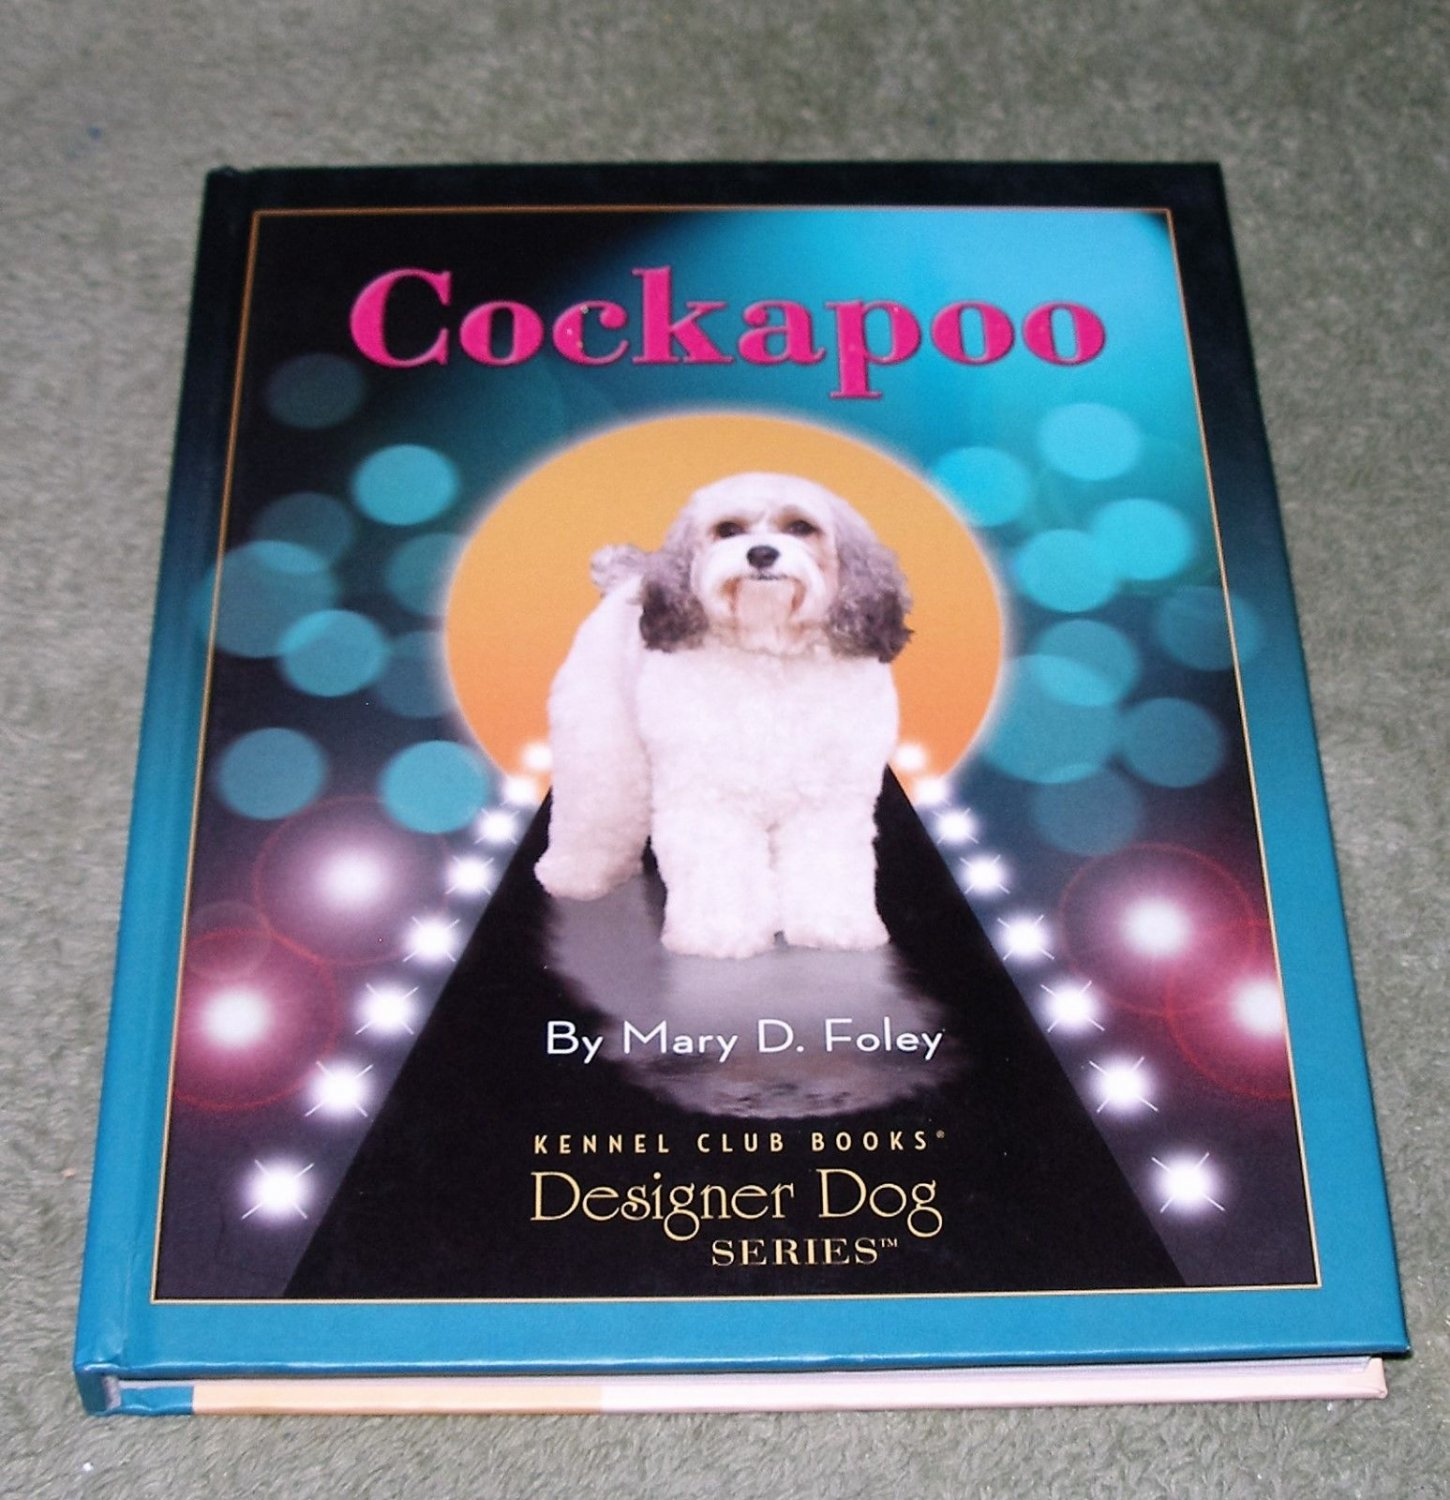 Cockapoo A Kennel Club Book Designer Dog Series - photo#1